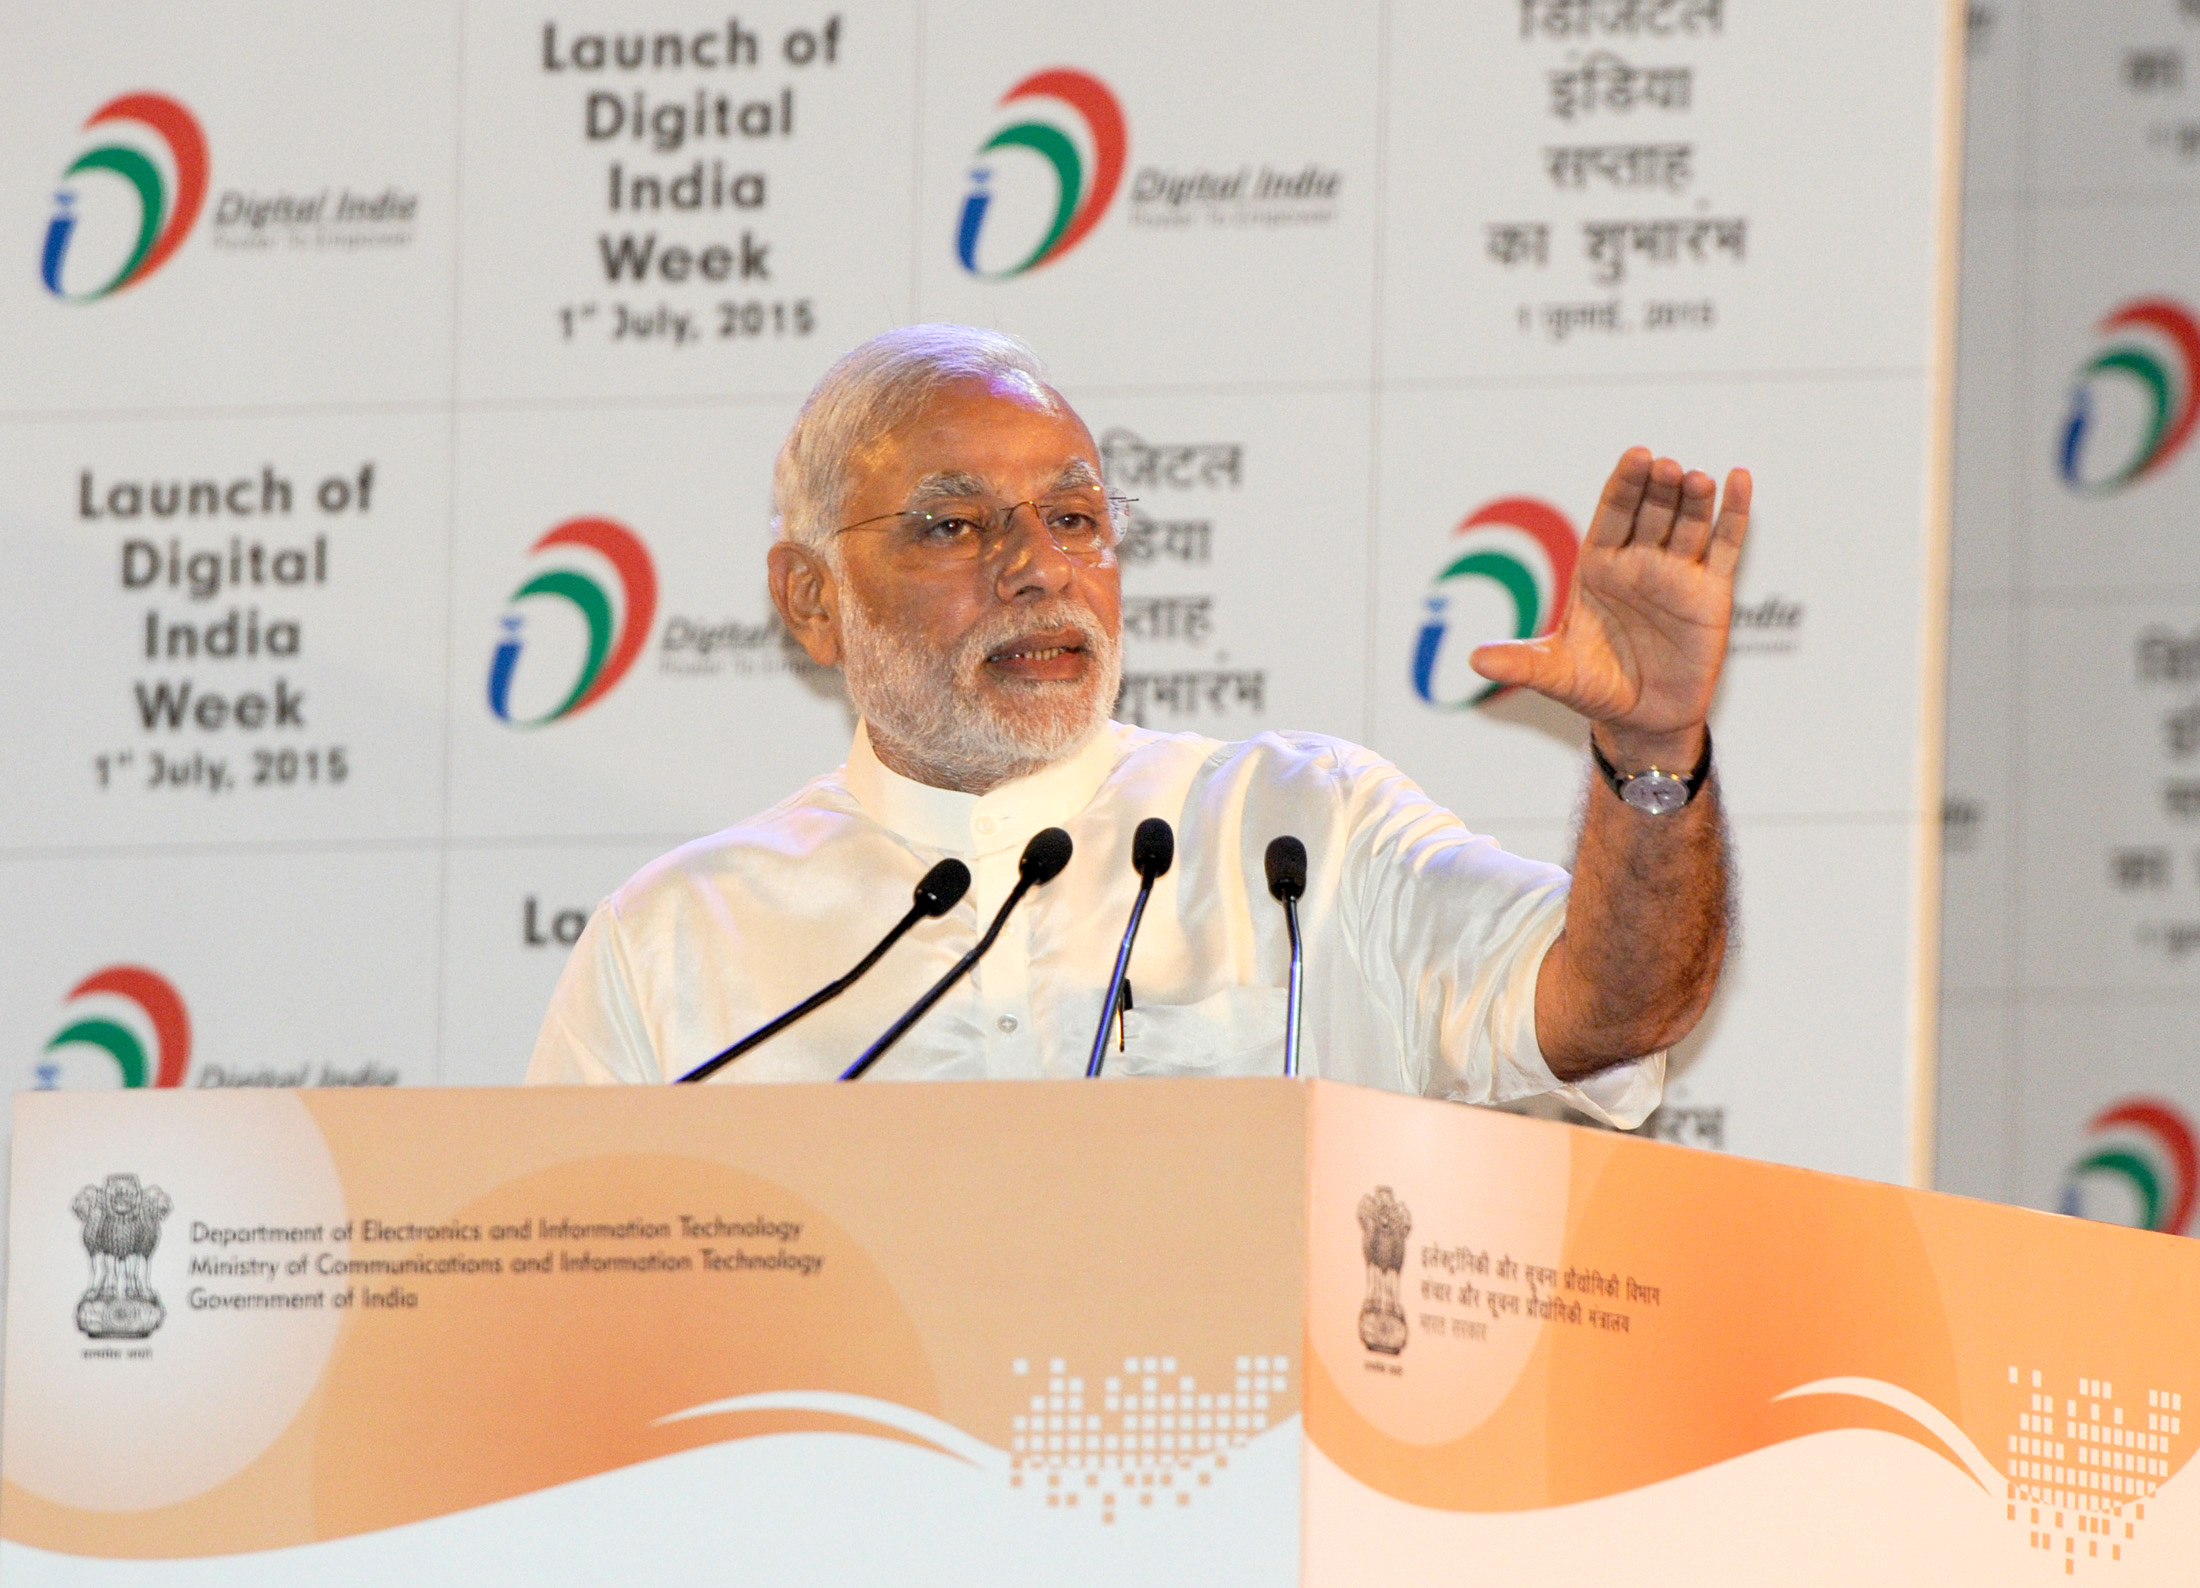 India's 'Digital Week' Highlights Plans for Wi-fi Push